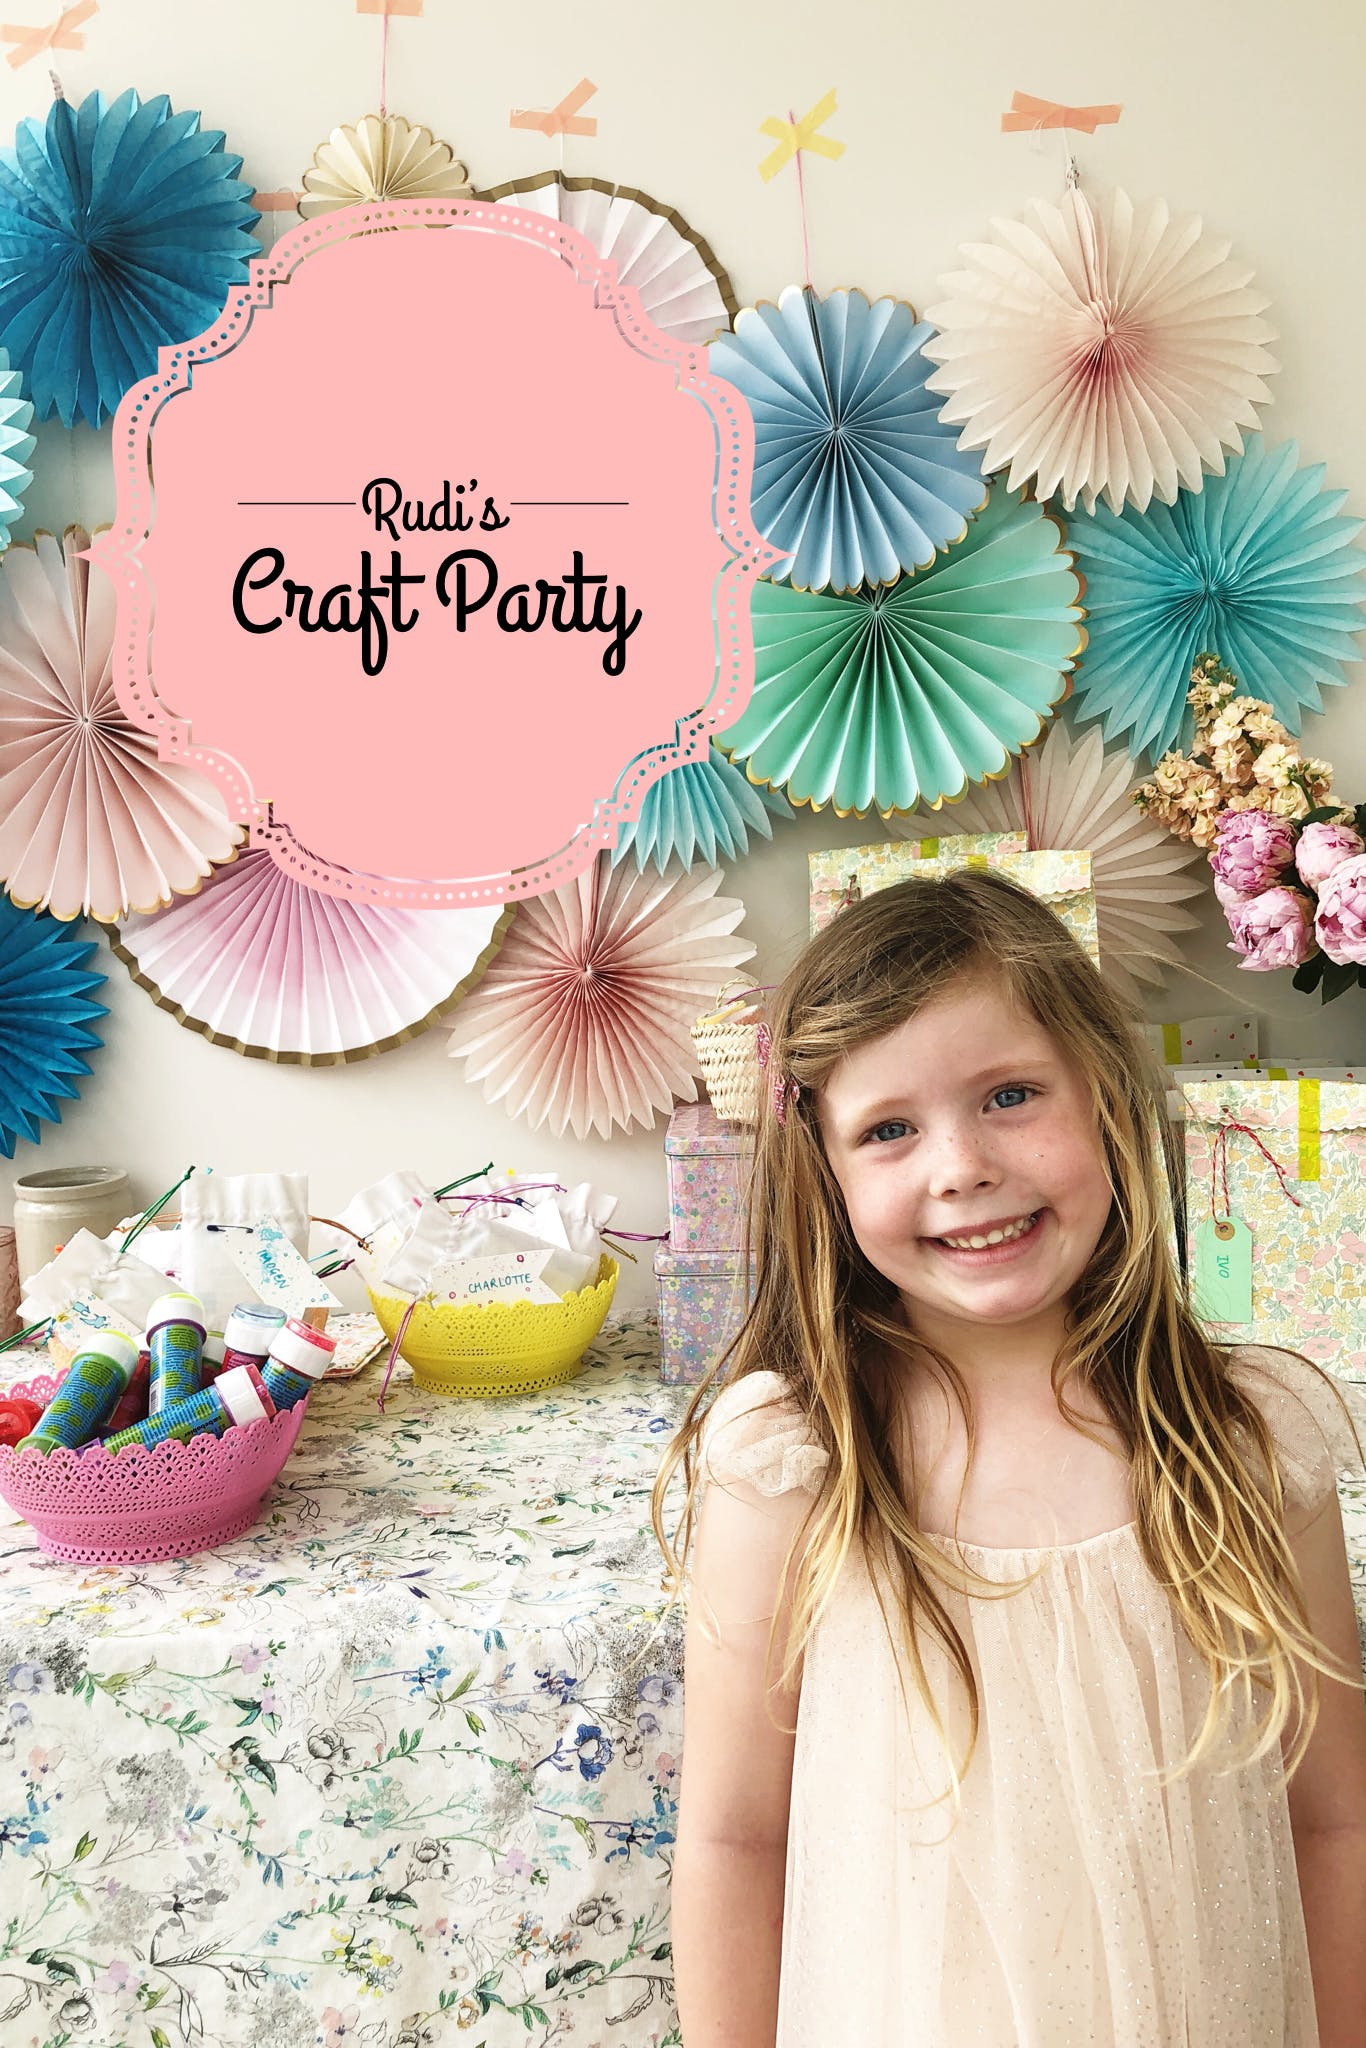 Cute ideas for a children's craft party